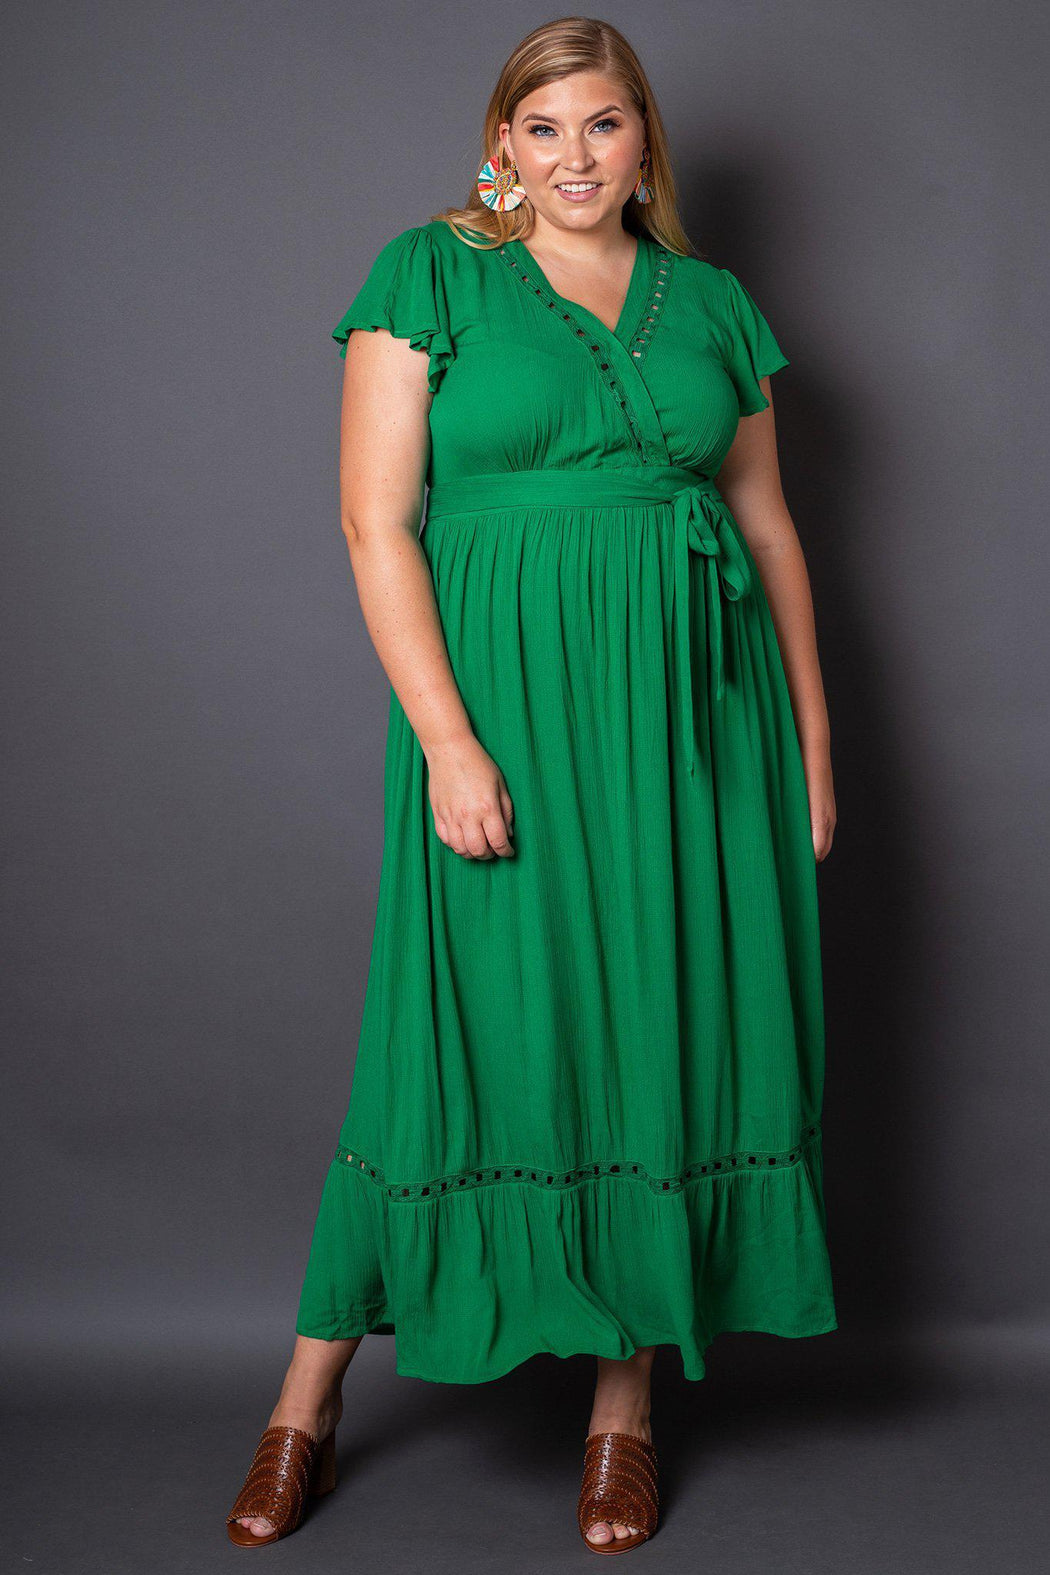 Kelli Green Maxi Dress Plus-Size on Model- Front View